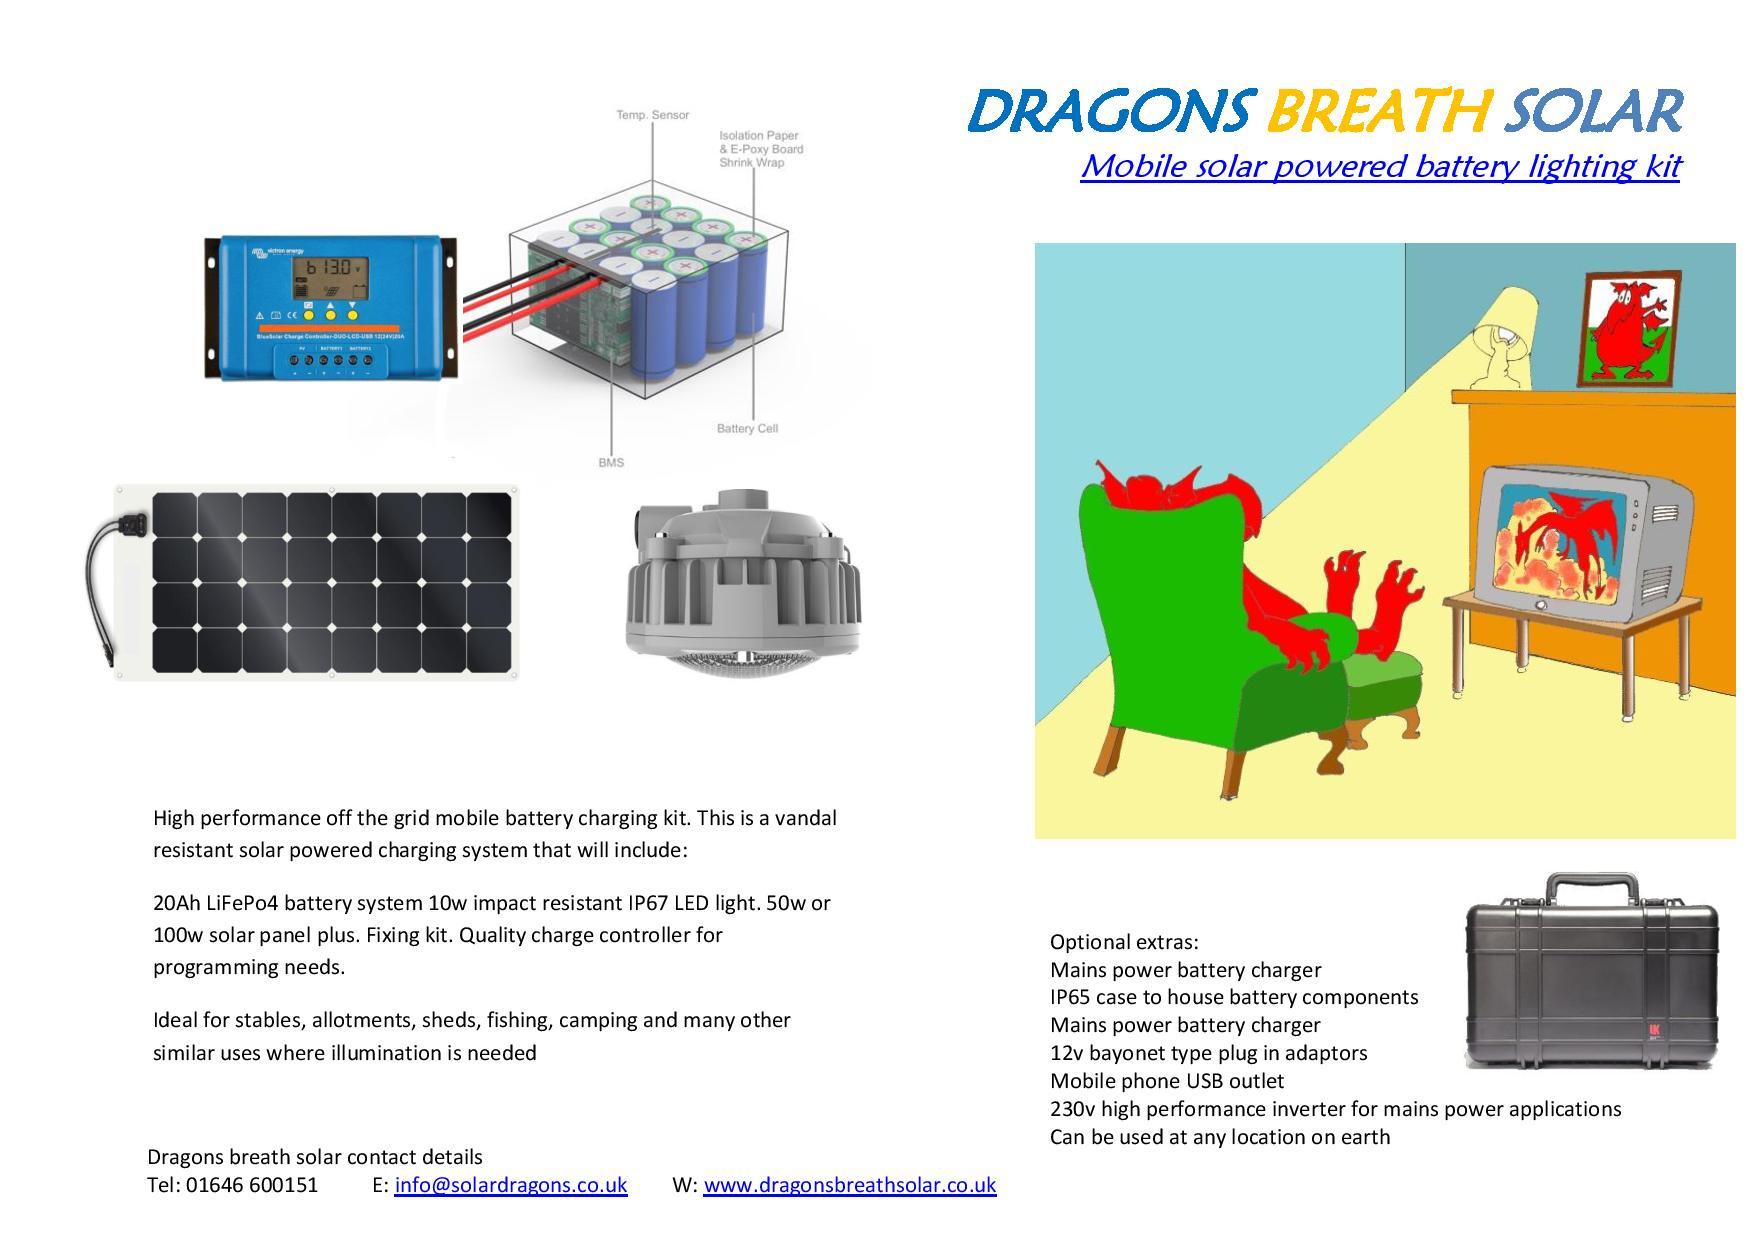 Vandal resistant mobile battery charging system for camping, fishing, sheds and allotments